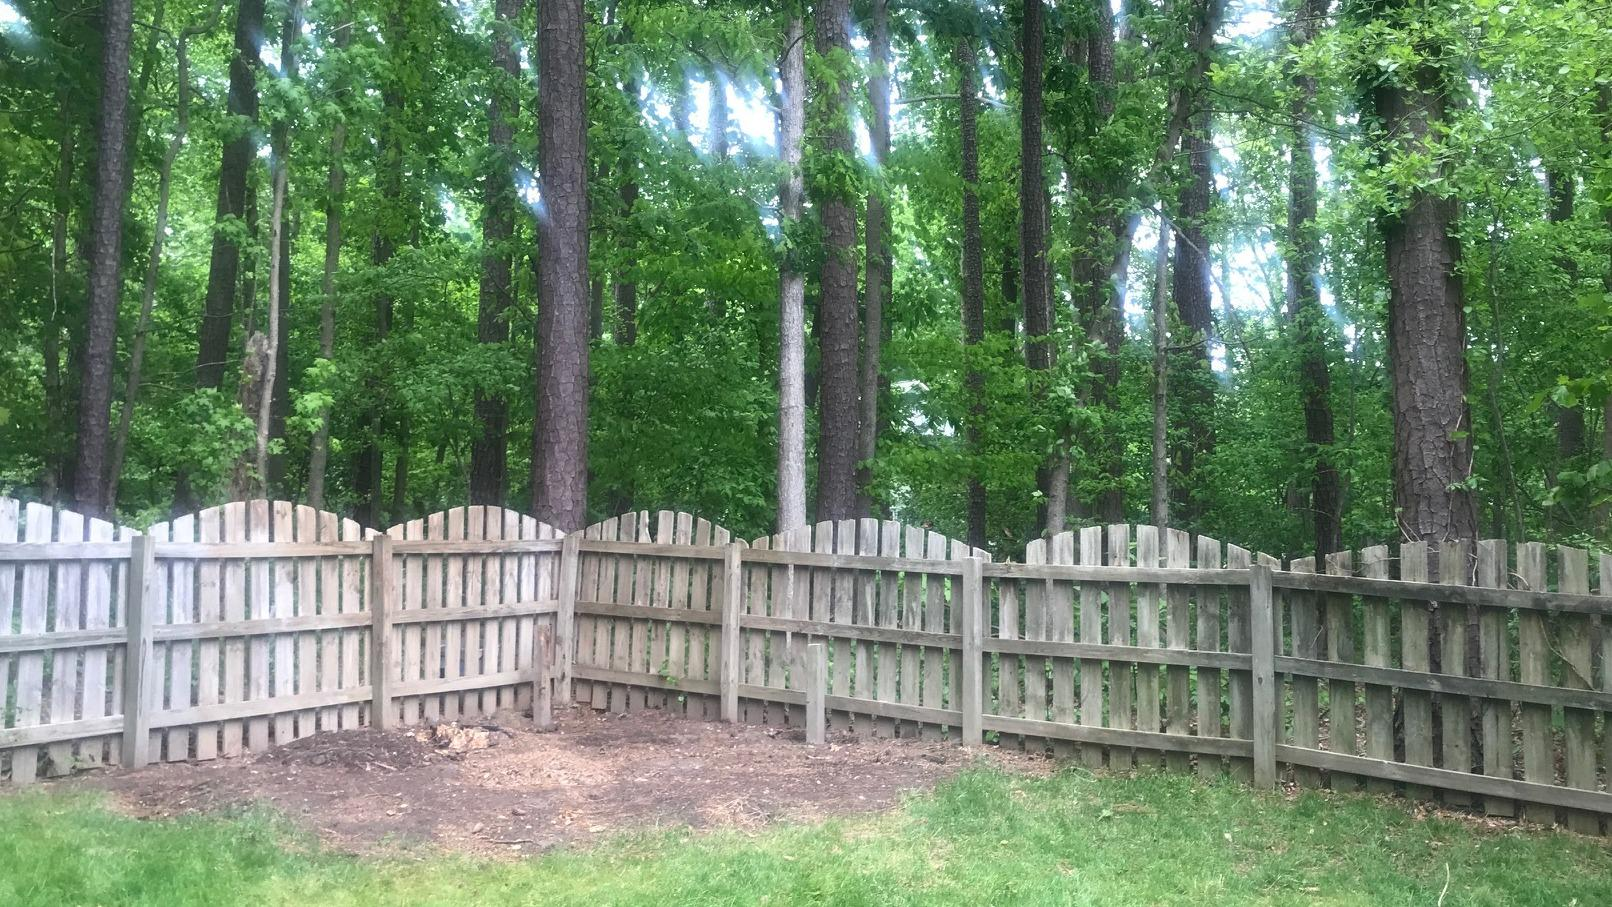 Tree House Removal in Cary, NC - After Photo